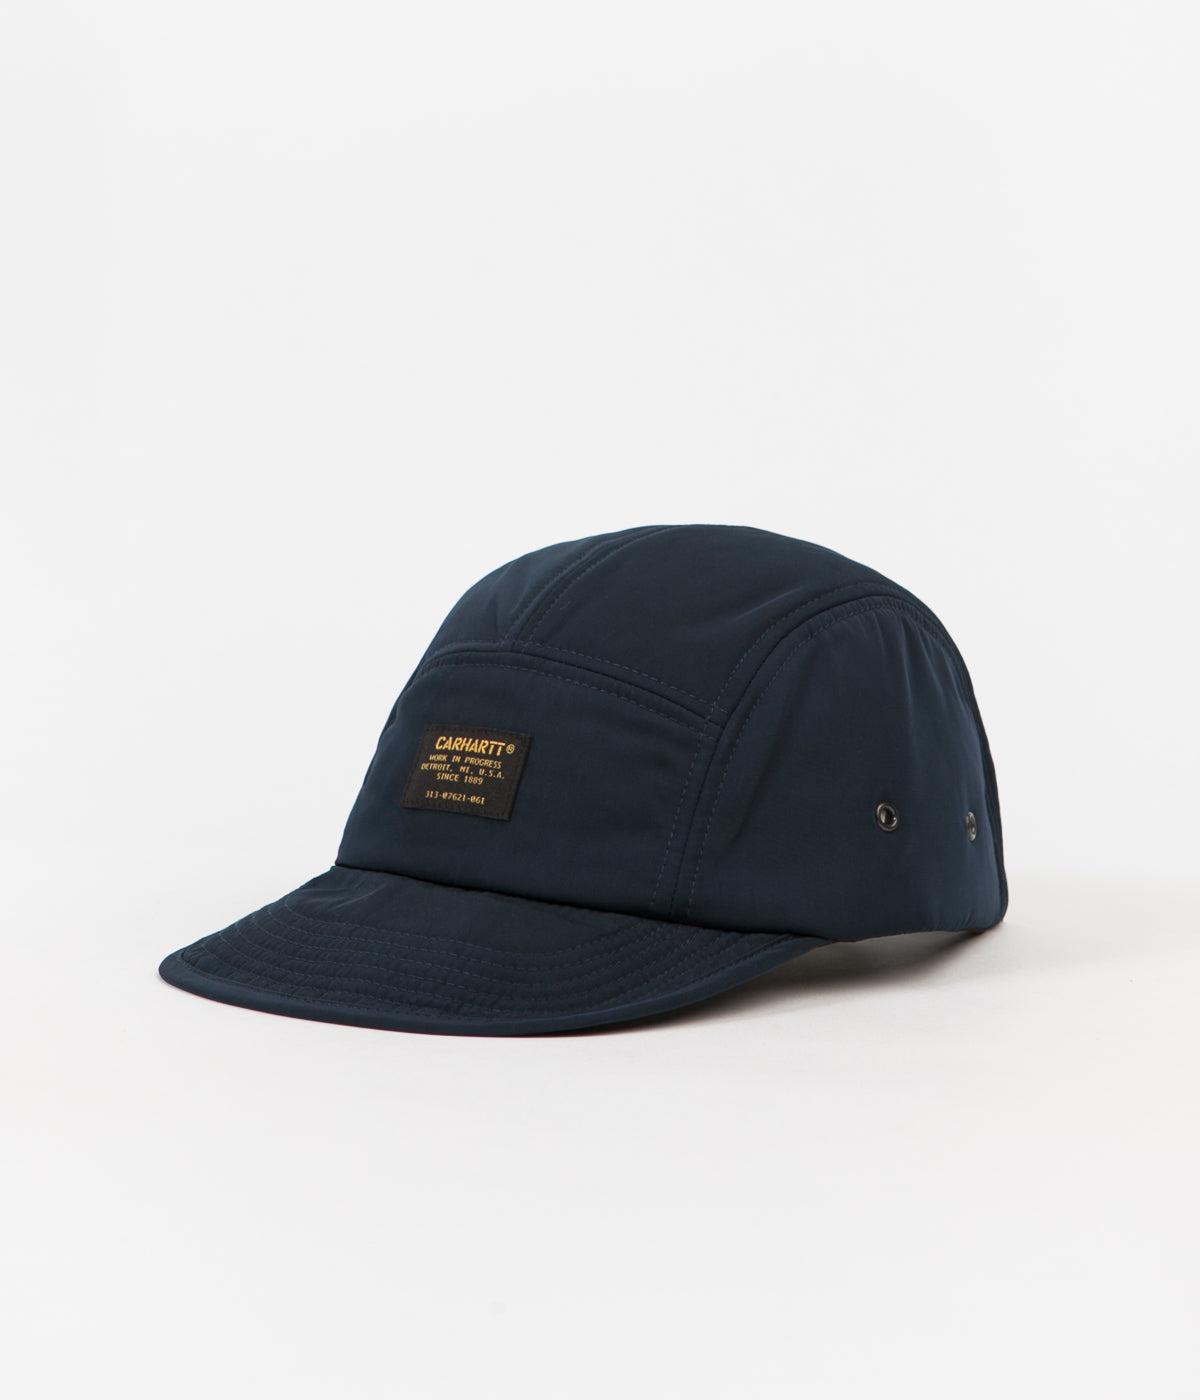 467b7ab9dd9 ... coupon code for carhartt military logo cap navy 78777 847dc